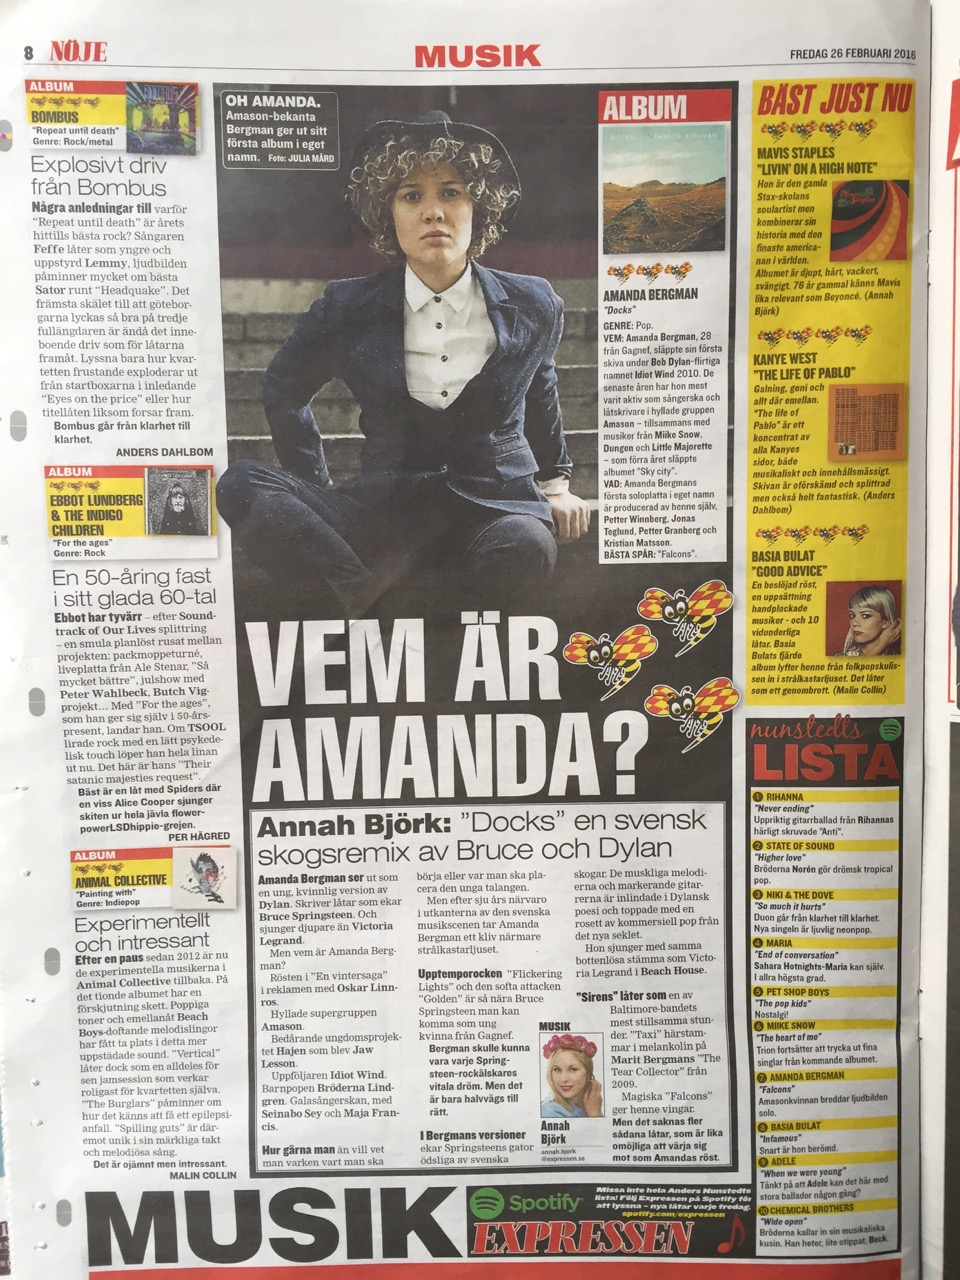 Expressen huvudrec - Mandy.jpeg